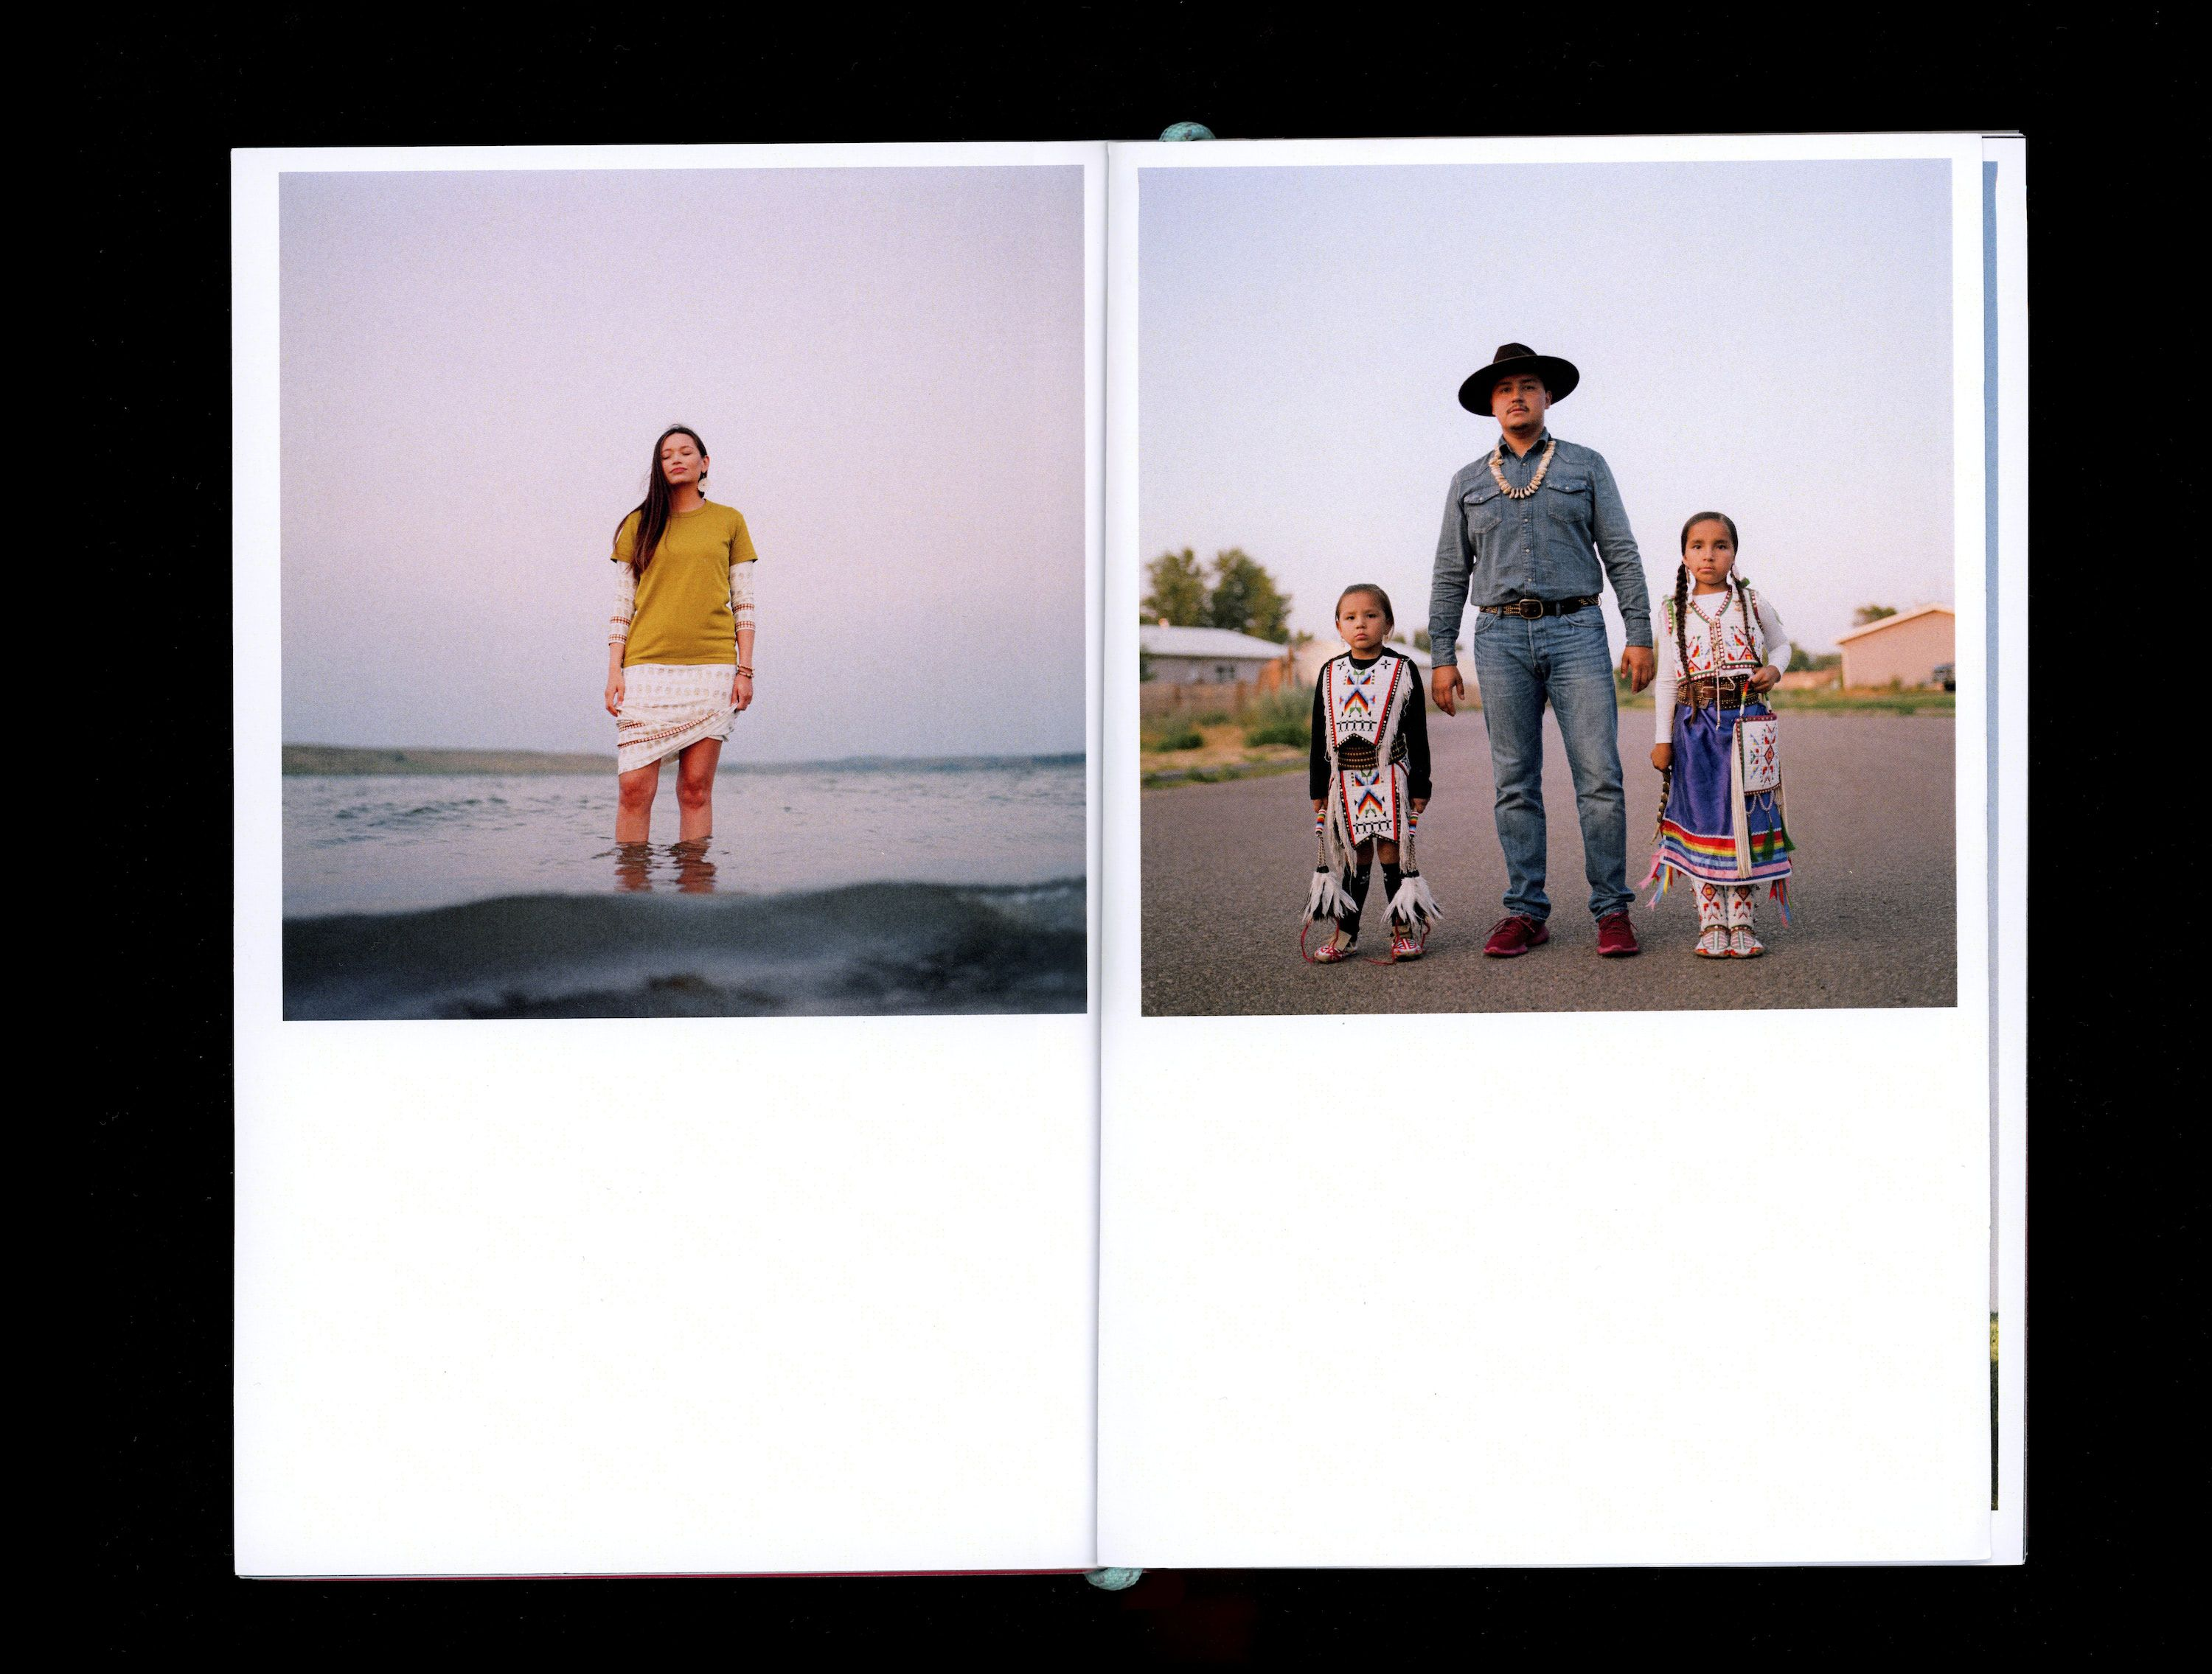 Two photographs in book showing Kylie Driver on left standing in lake and The Little Sky Family on right standing on road wearing traditional Native clothing